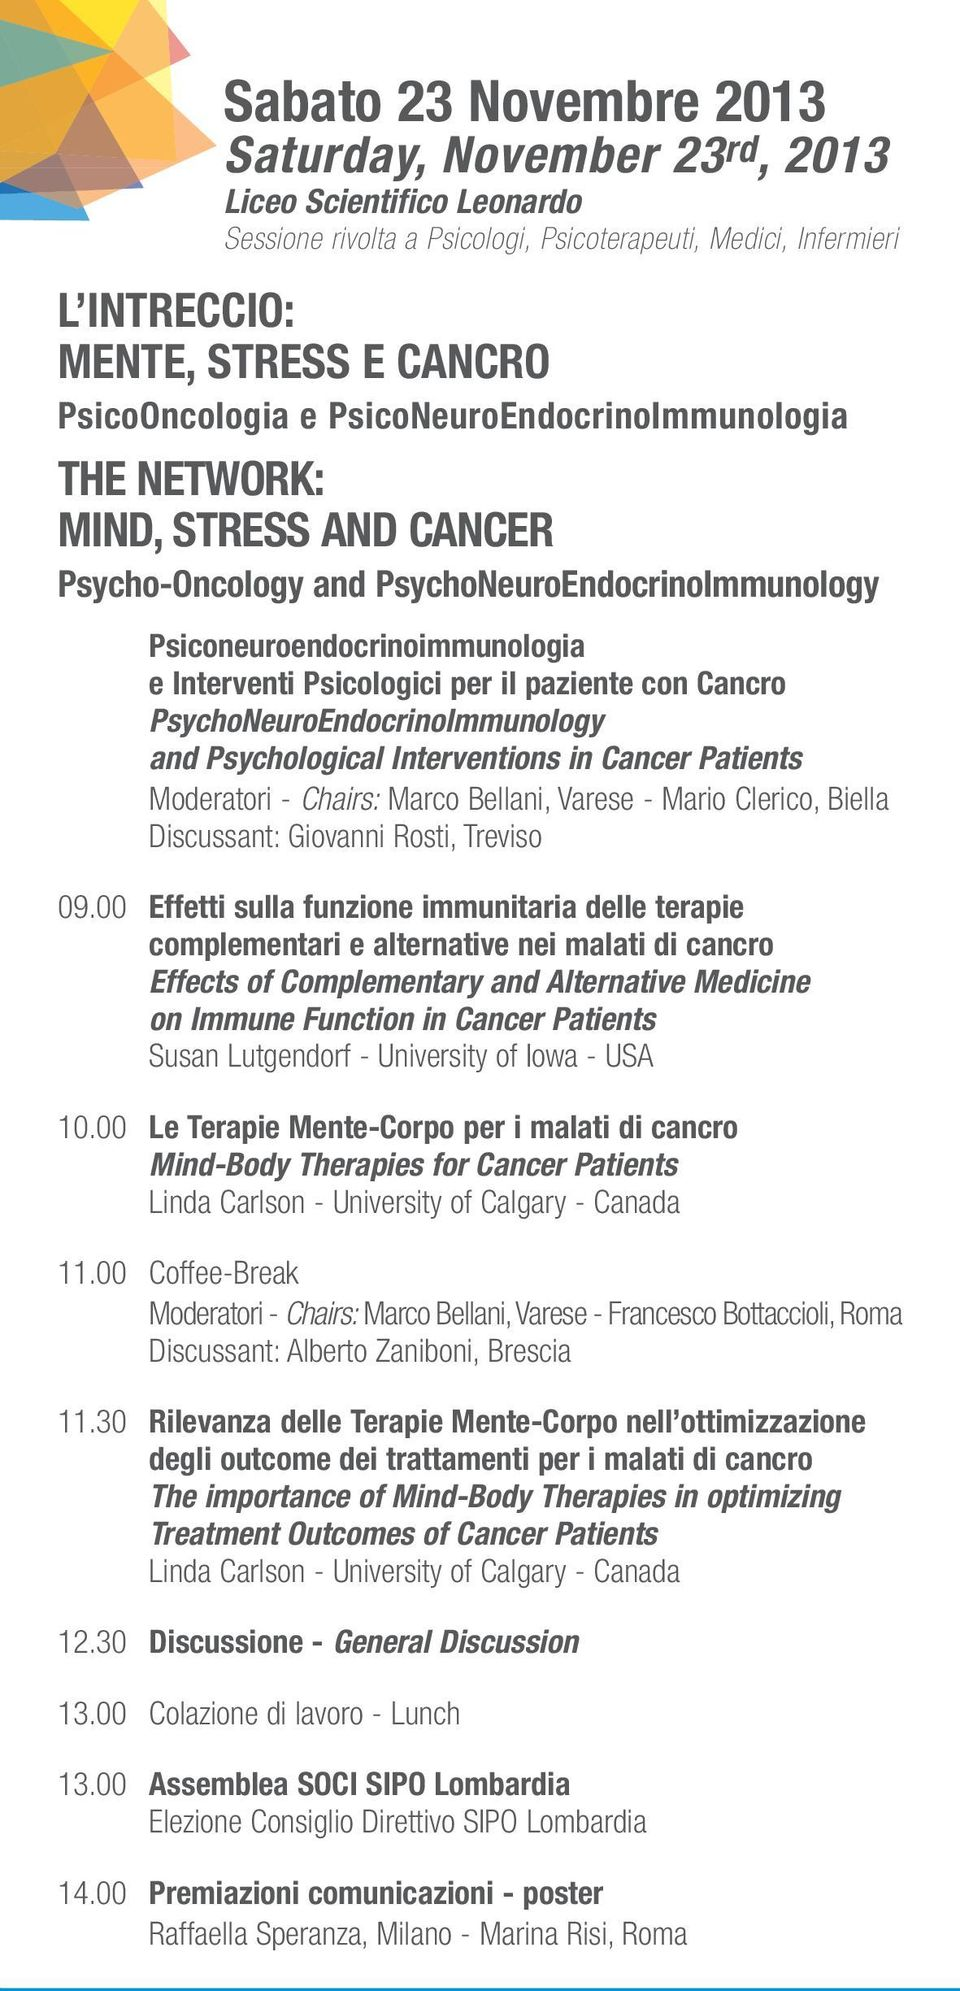 Cancro PsychoNeuroEndocrinoImmunology and Psychological Interventions in Cancer Patients Moderatori - Chairs: Marco Bellani, Varese - Mario Clerico, Biella Discussant: Giovanni Rosti, Treviso 09.